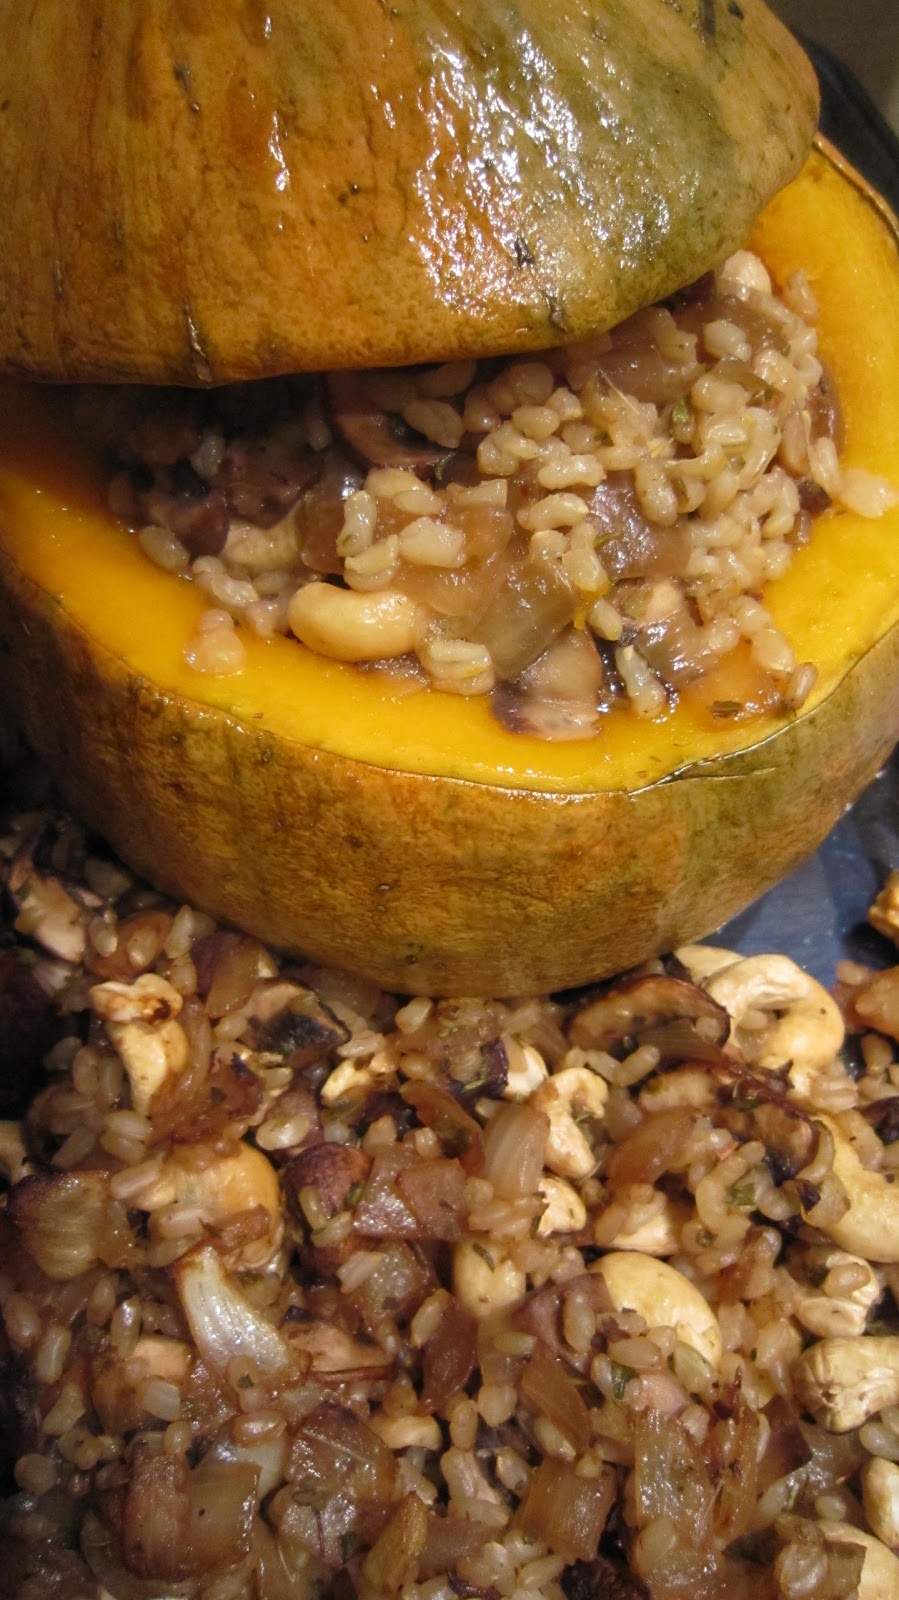 ... Squared: Baked Squash Stuffed with Brown Rice, Cashews, and Mushrooms